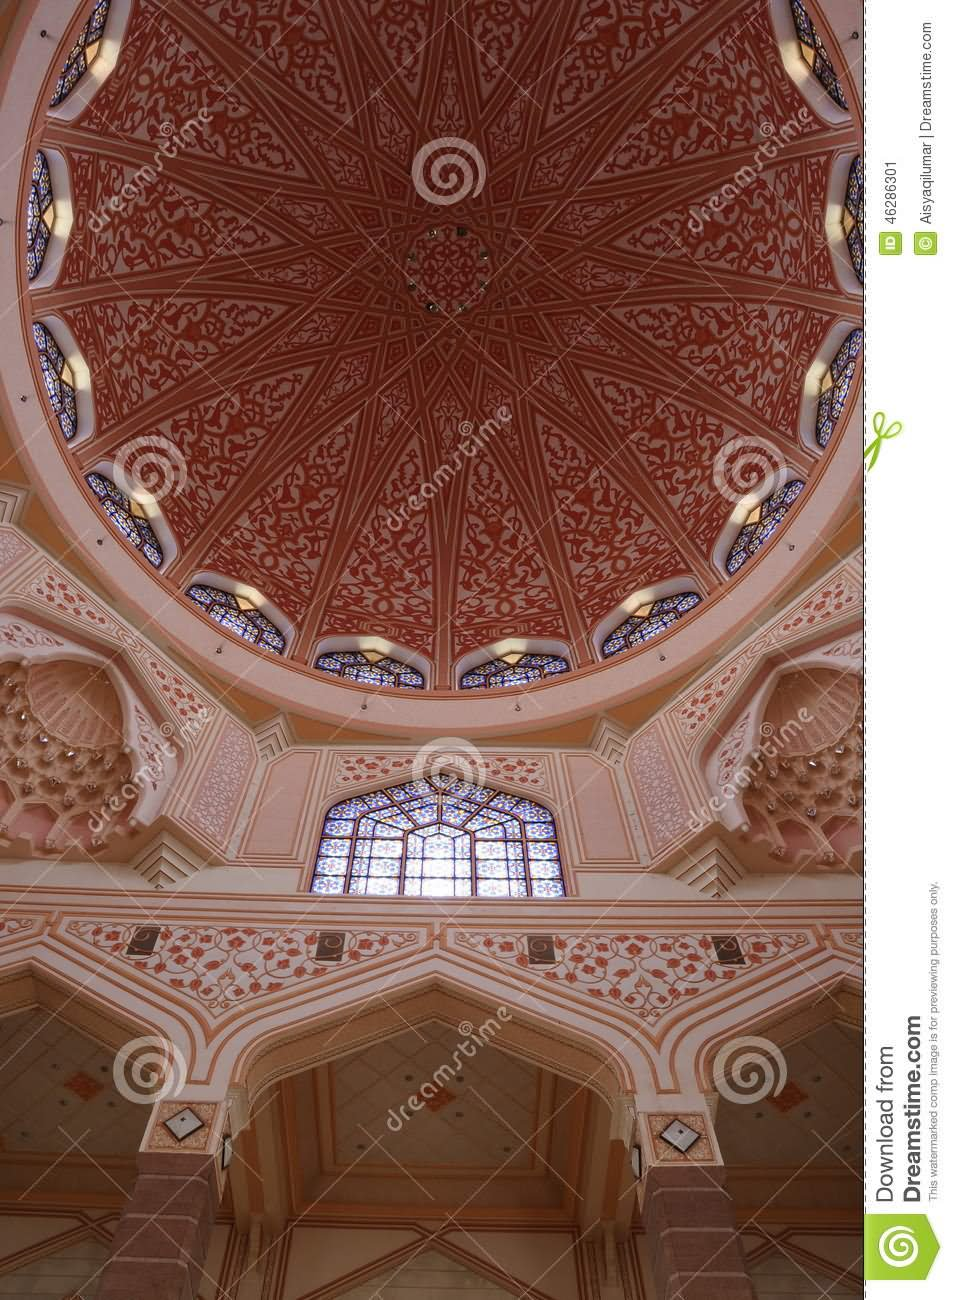 Beautiful Dome Interior Of Putra Mosque